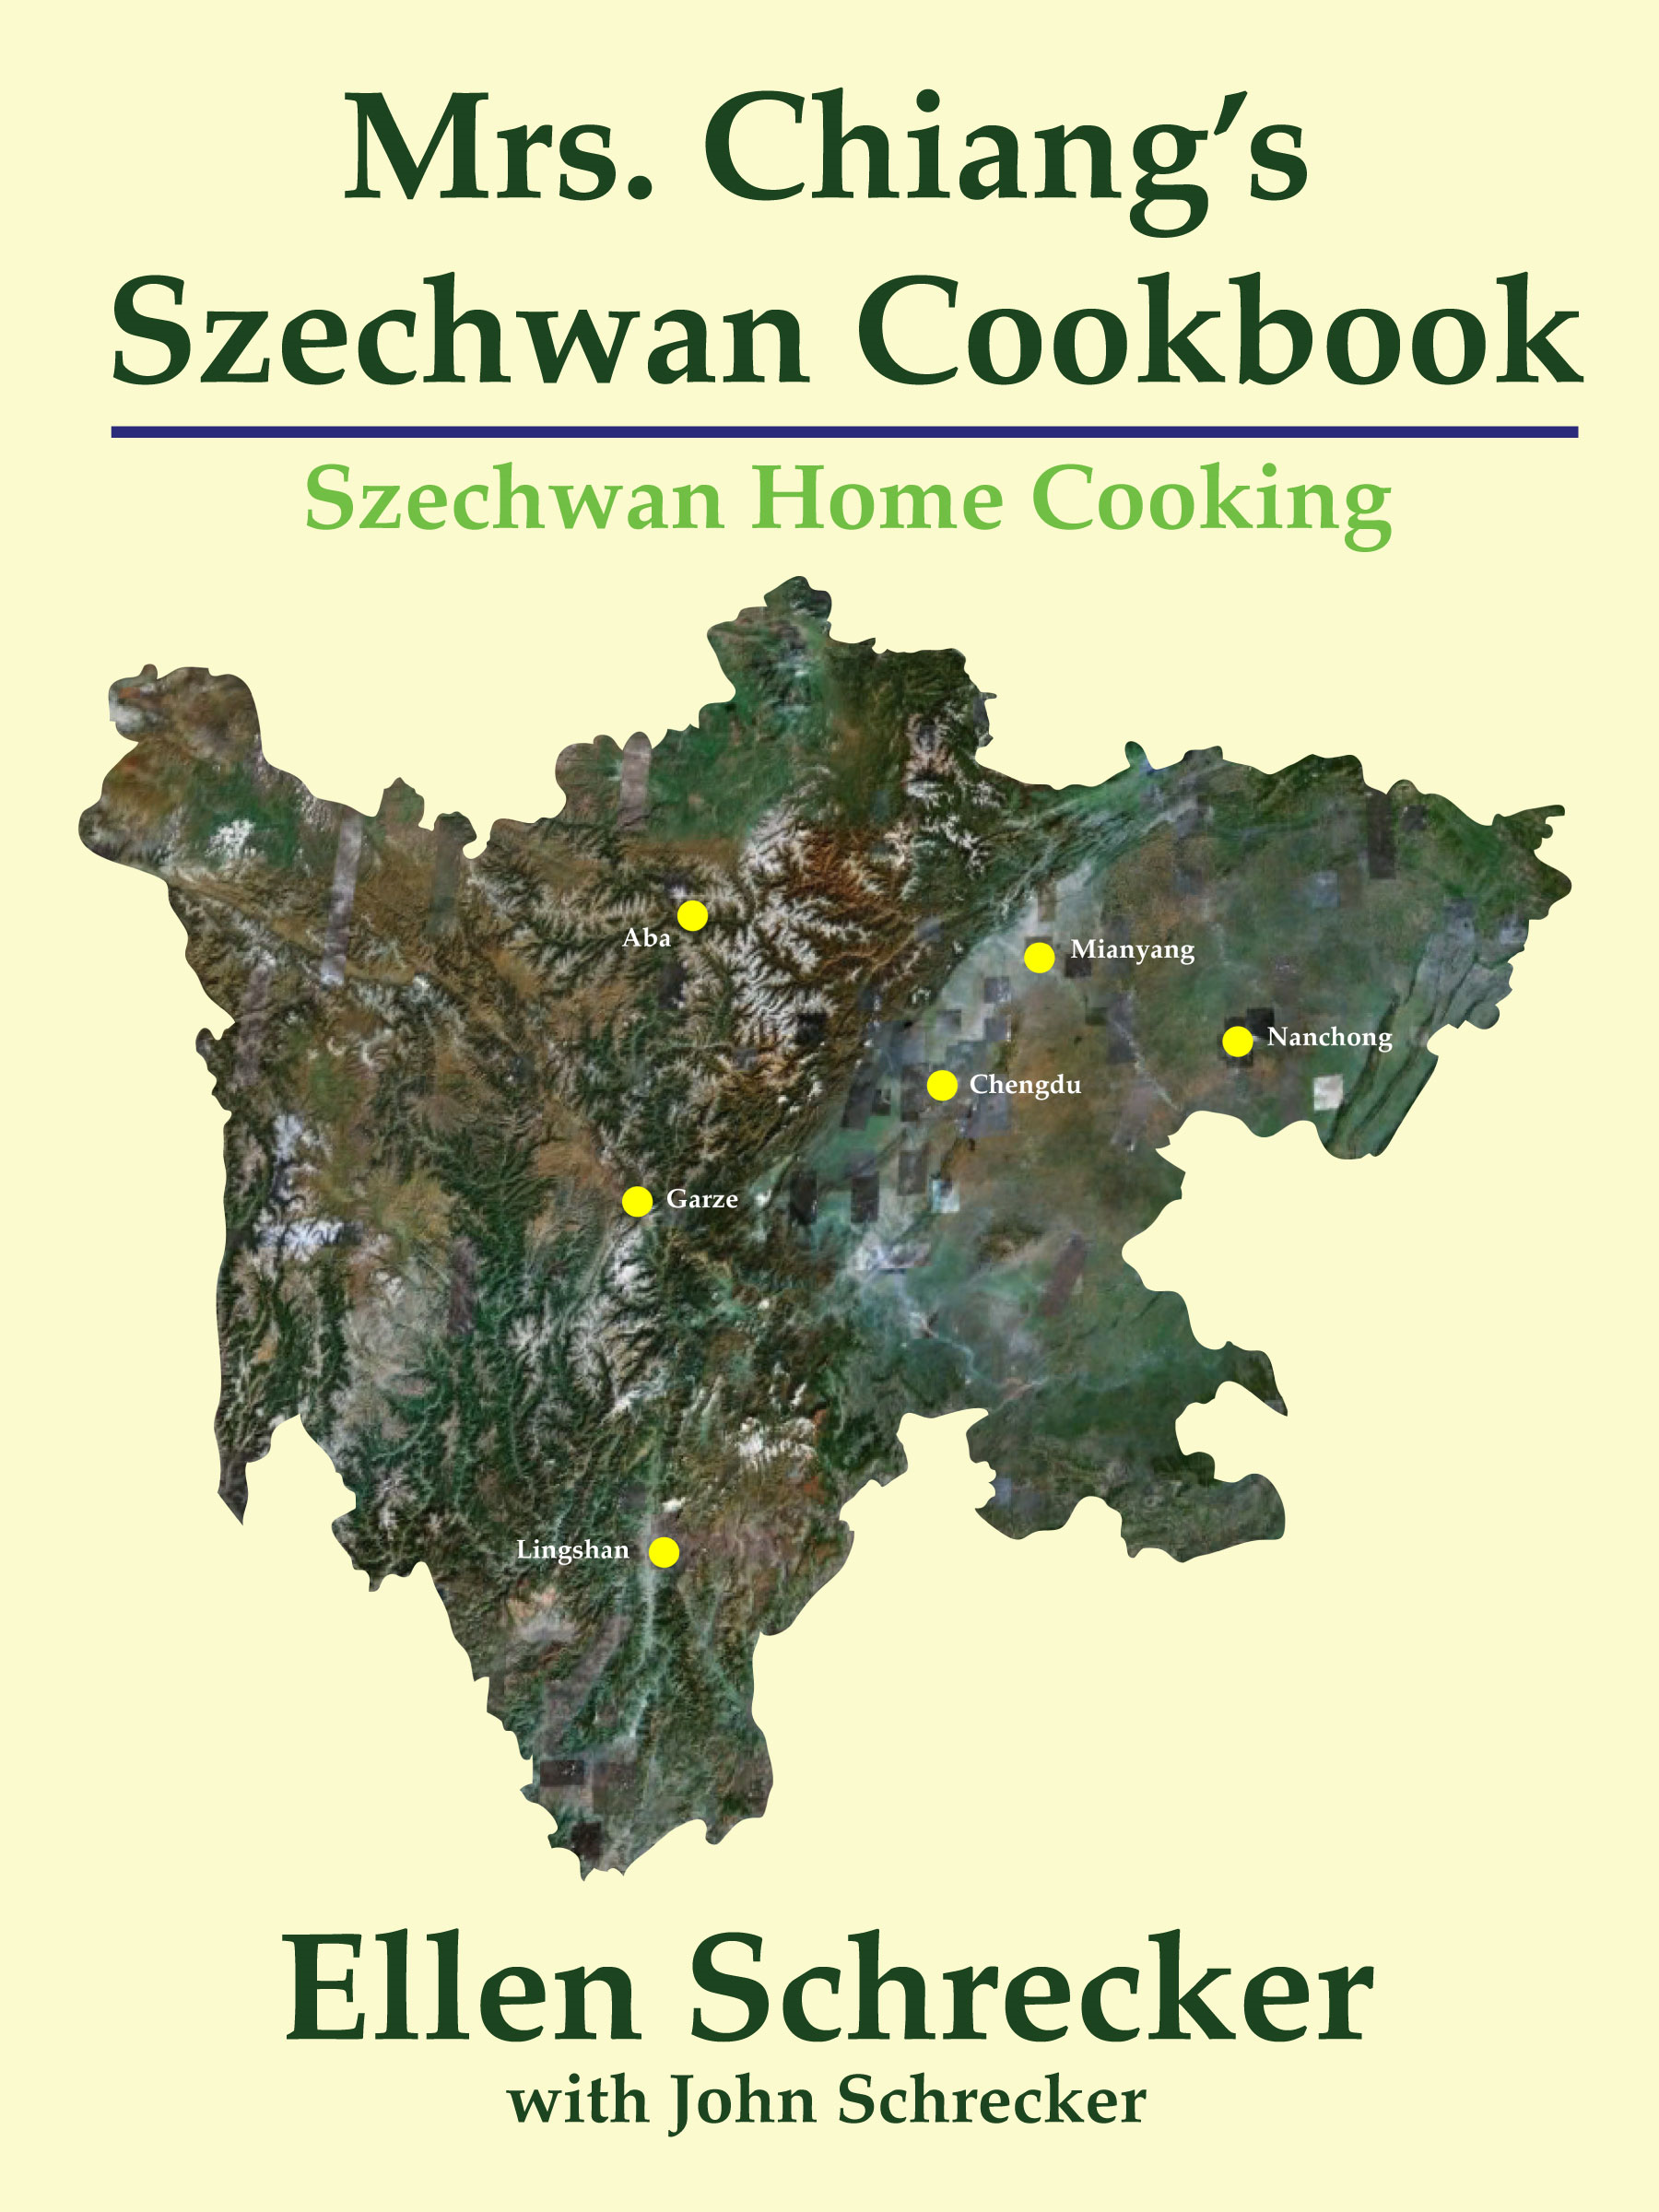 Mrs. Chiang's Szechwan Cookbook